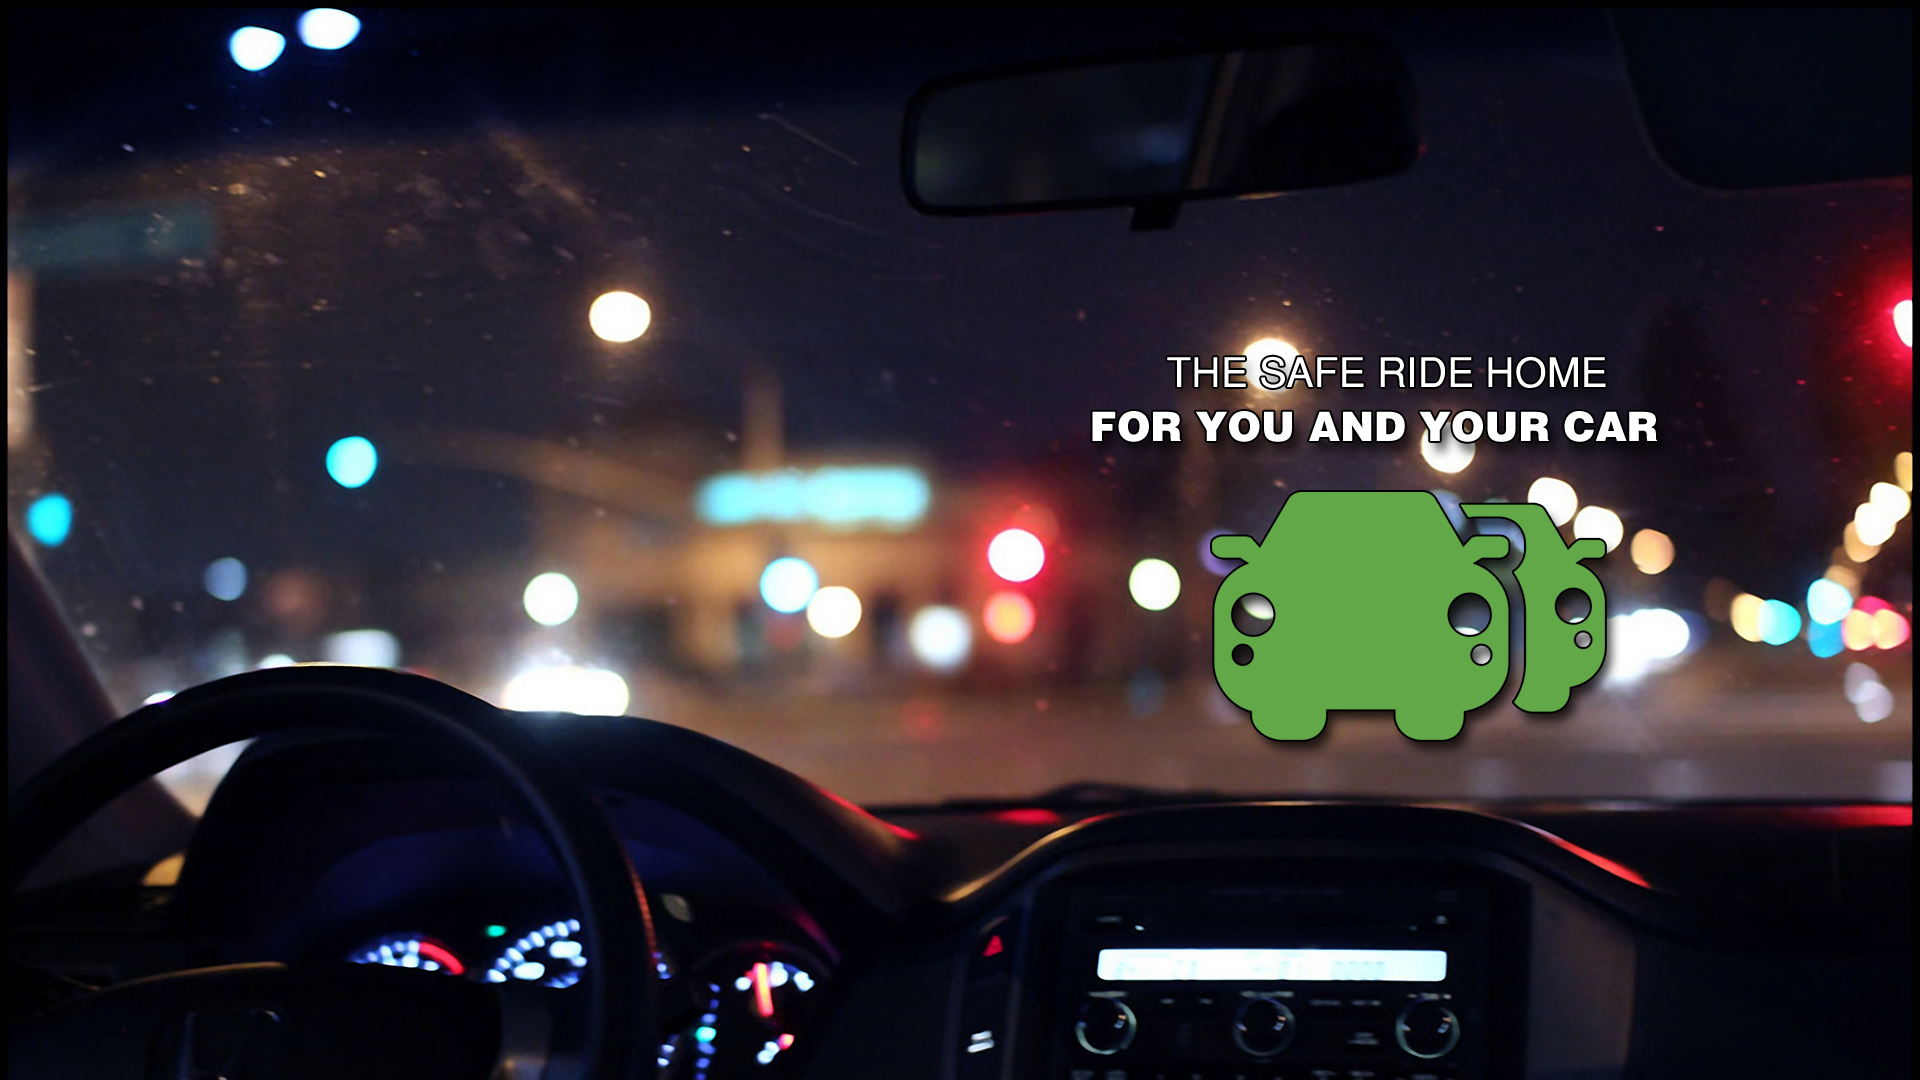 SafeRide-Home-For-You-and-Your-Car